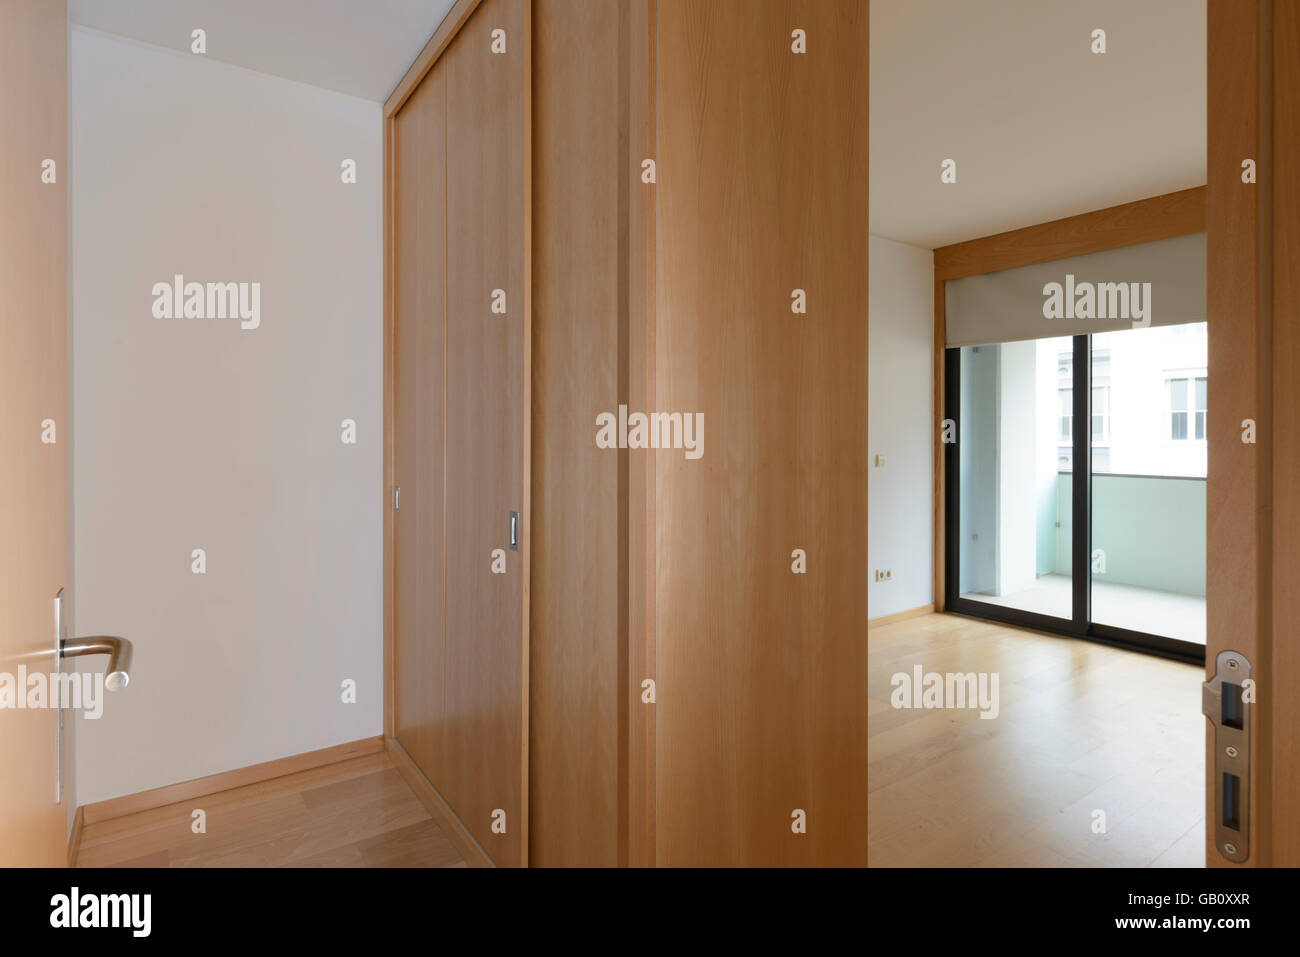 Superieur Empty Bedroom With Big Closet   Stock Image